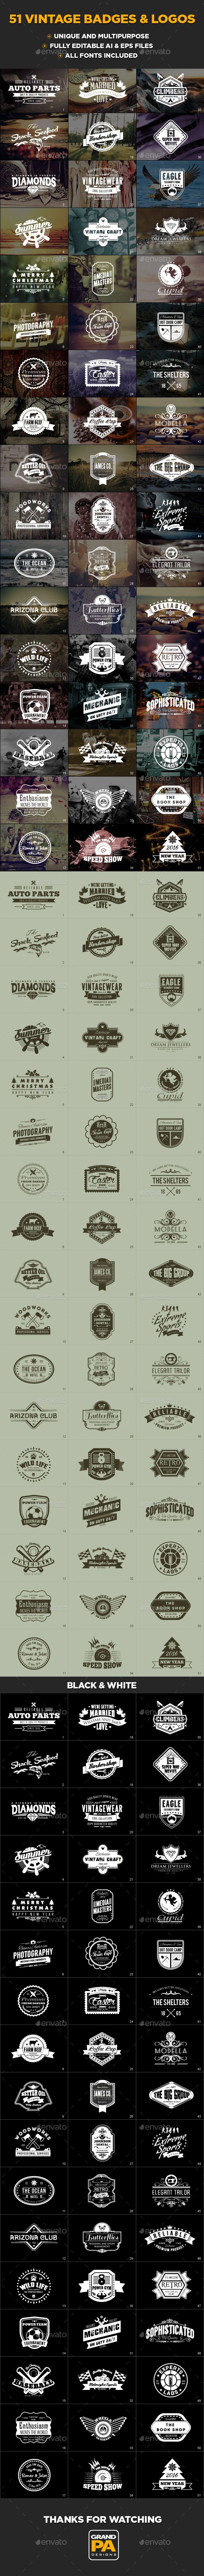 51 Vintage Badges and Logos Templates Vector EPS, AI. Download here: http://graphicriver.net/item/51-vintage-badges-and-logos/15348120?ref=ksioks